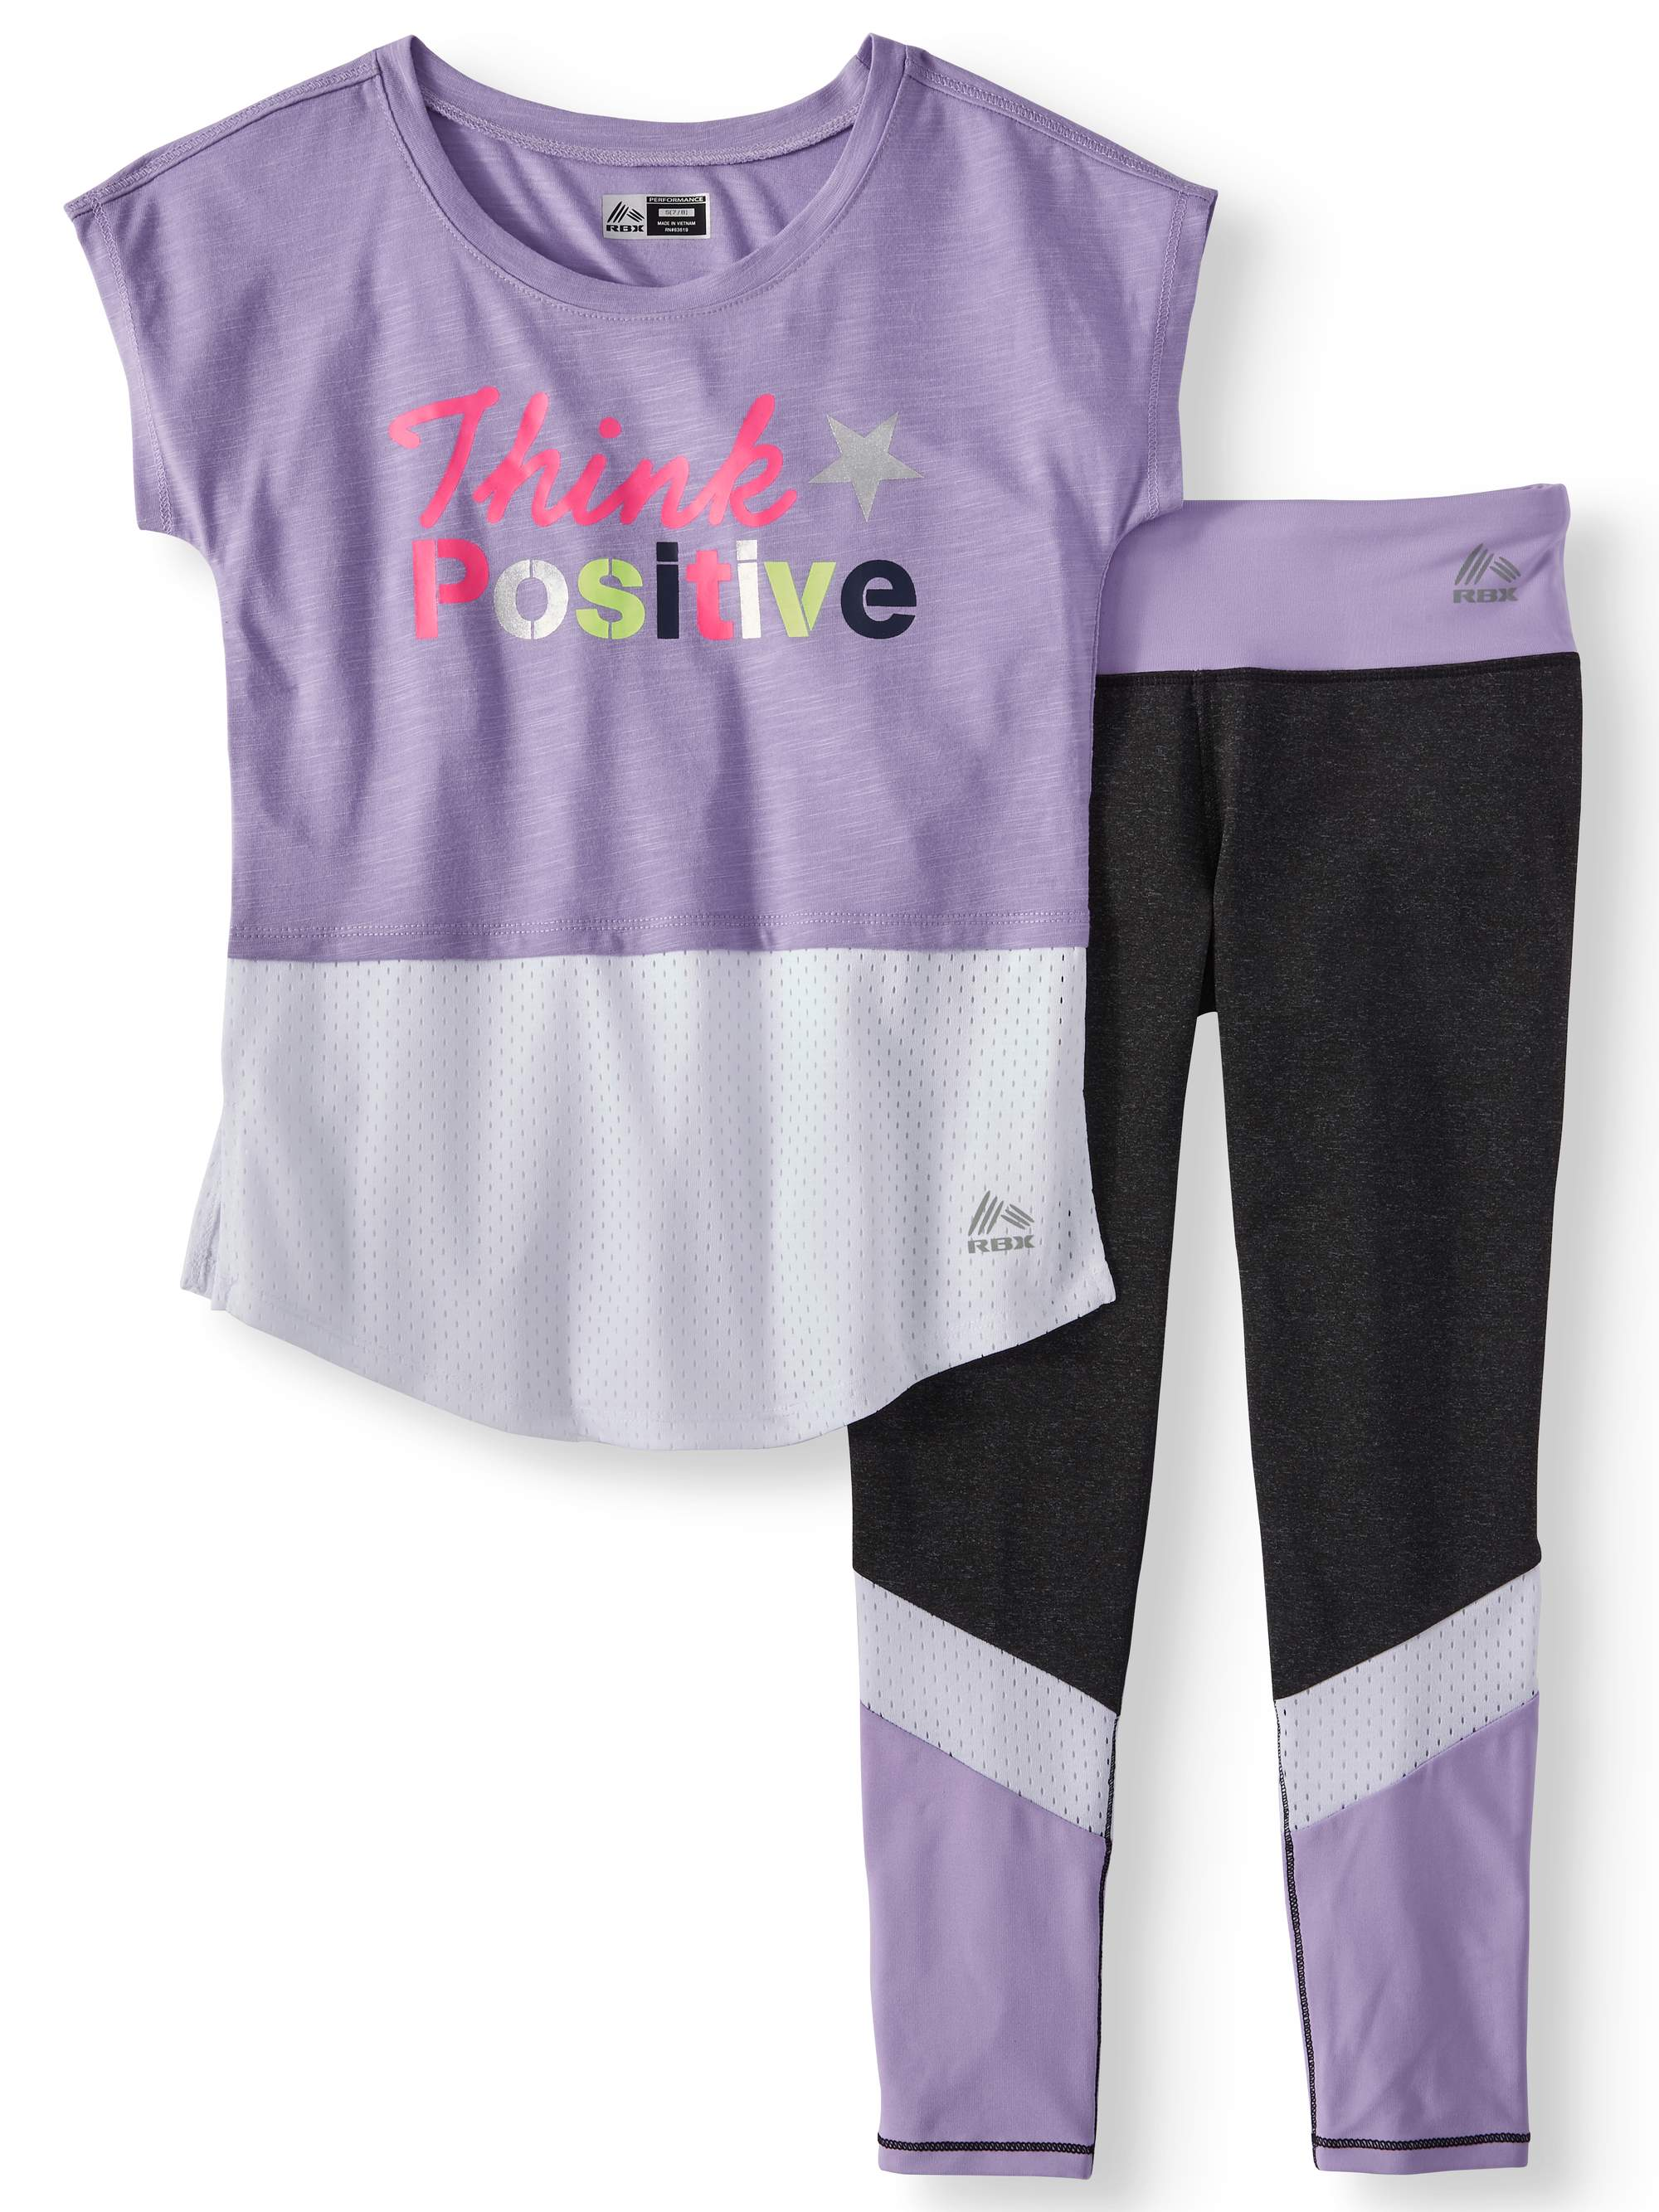 Performance 2Fer Graphic Top & Legging, 2-Piece Set (Little and Big Girls